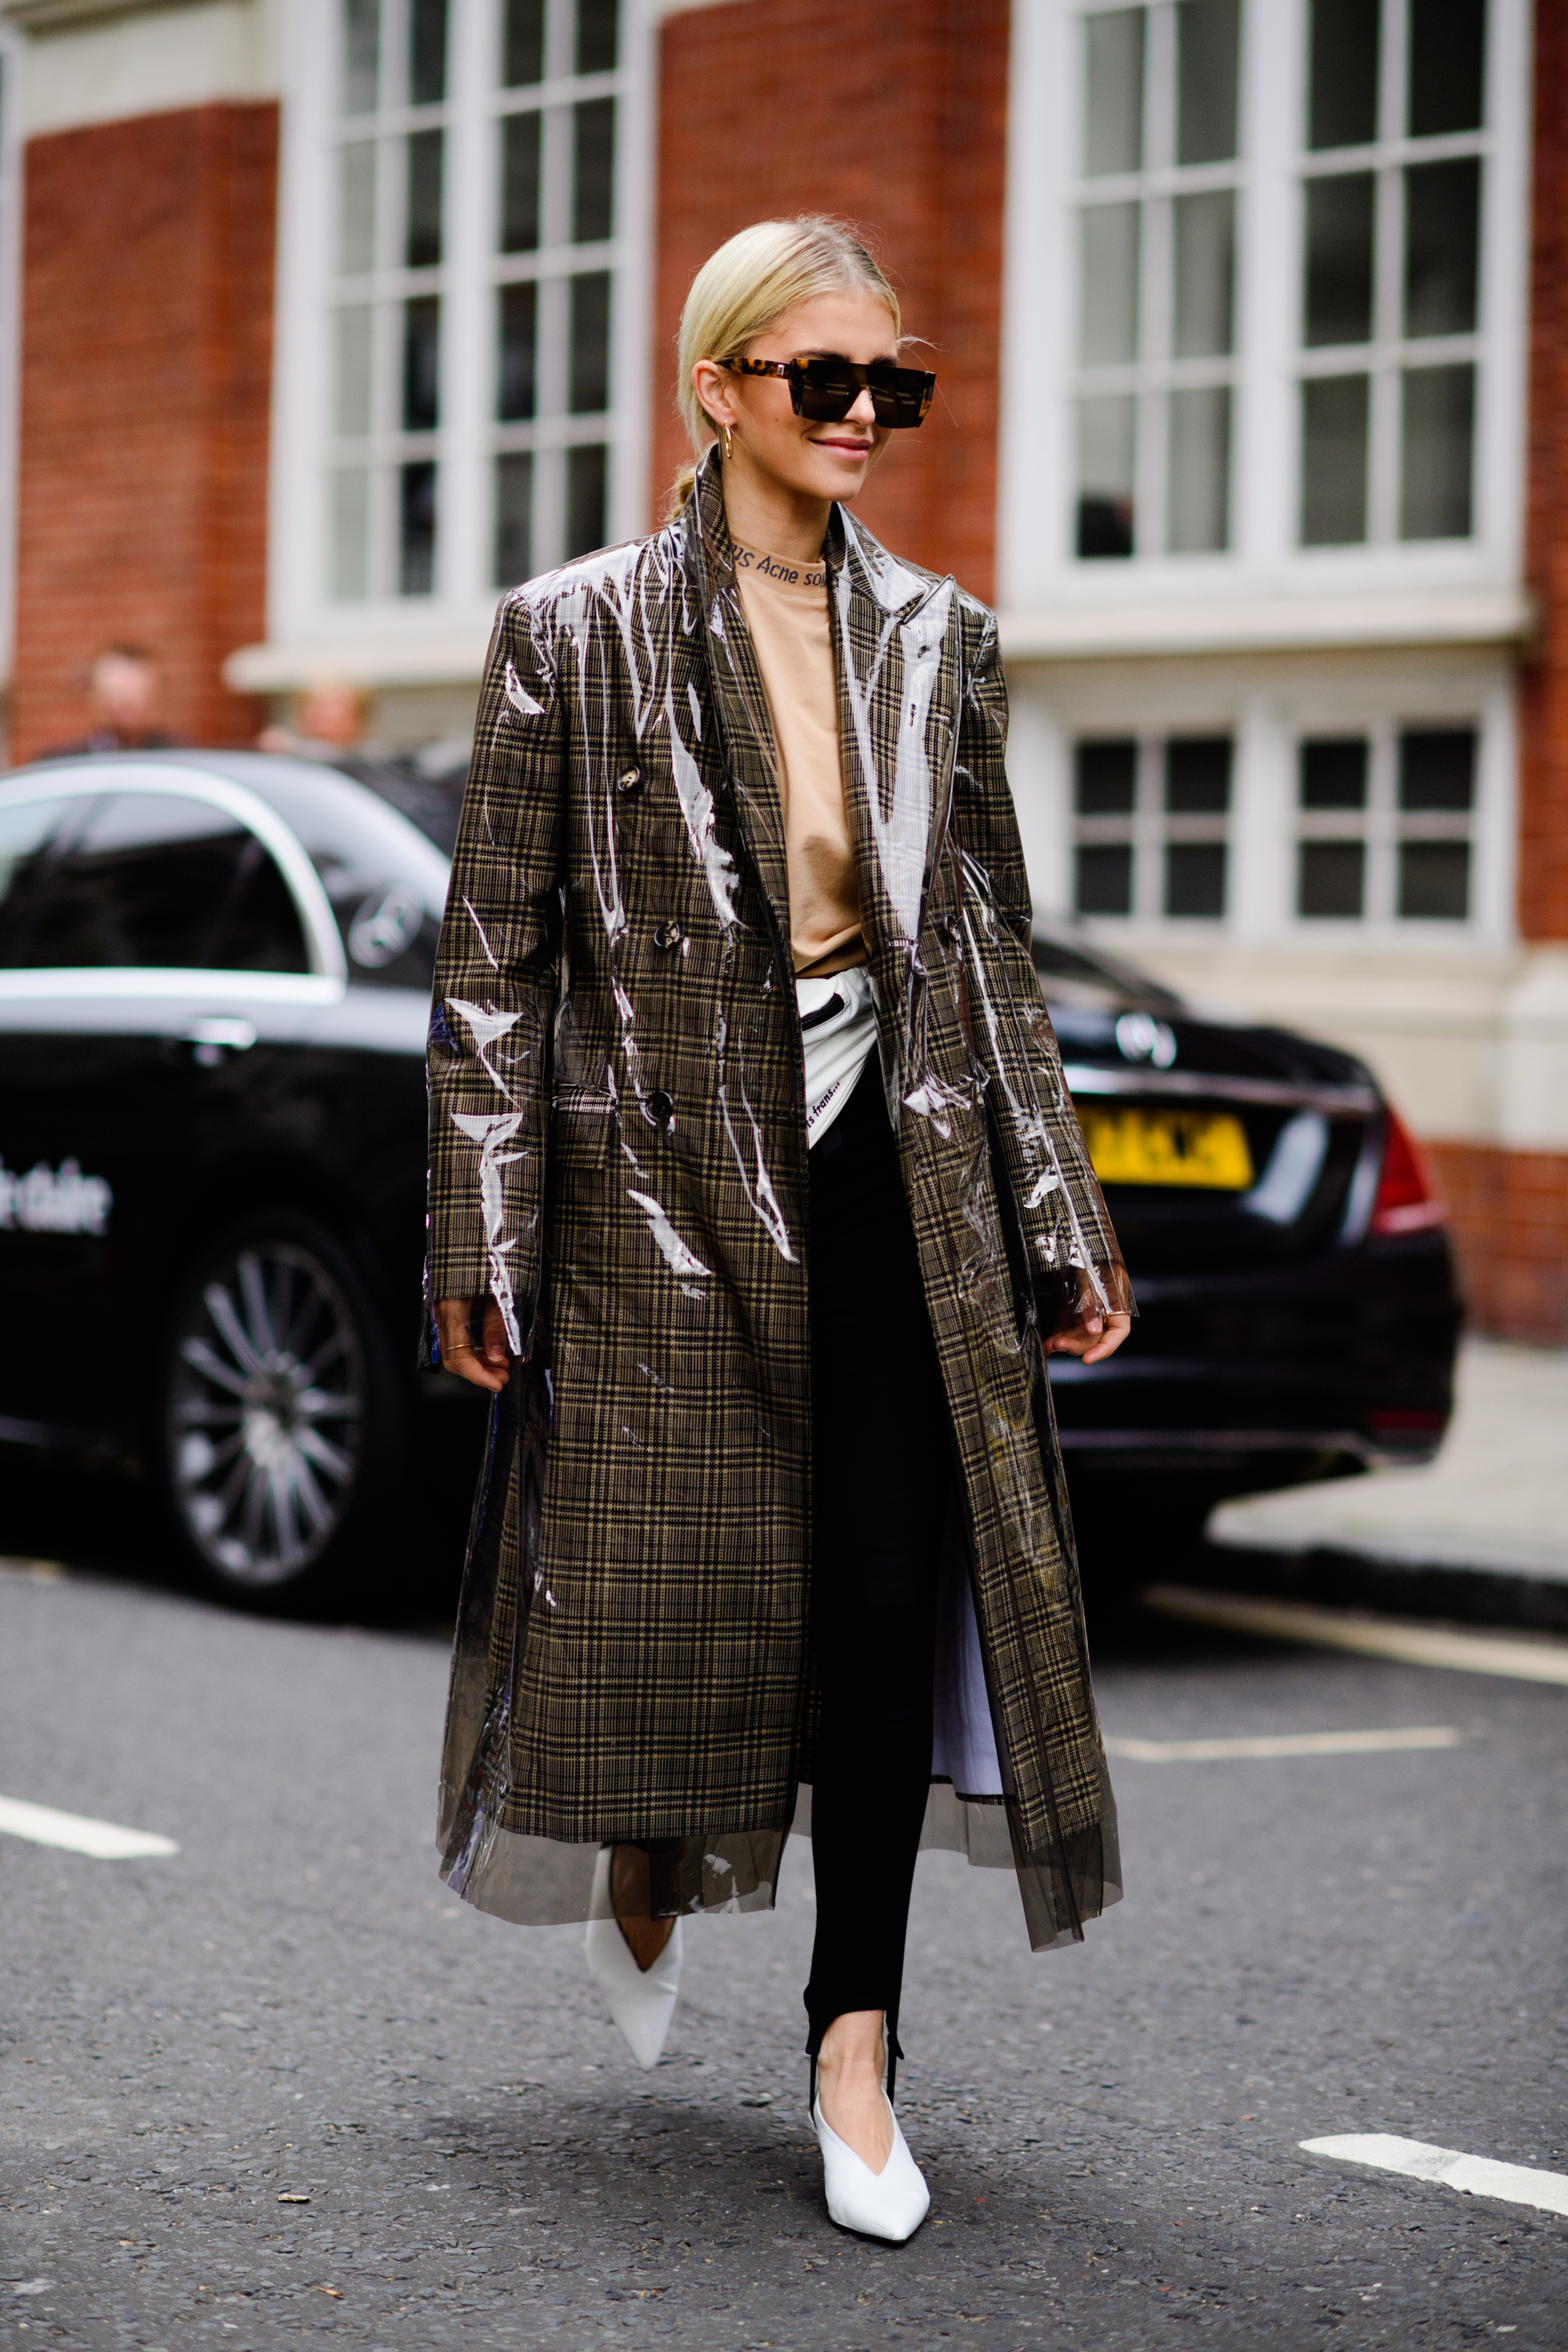 london-lfw-street-style-ss18-day-2-tyler-joe-013-1505754165